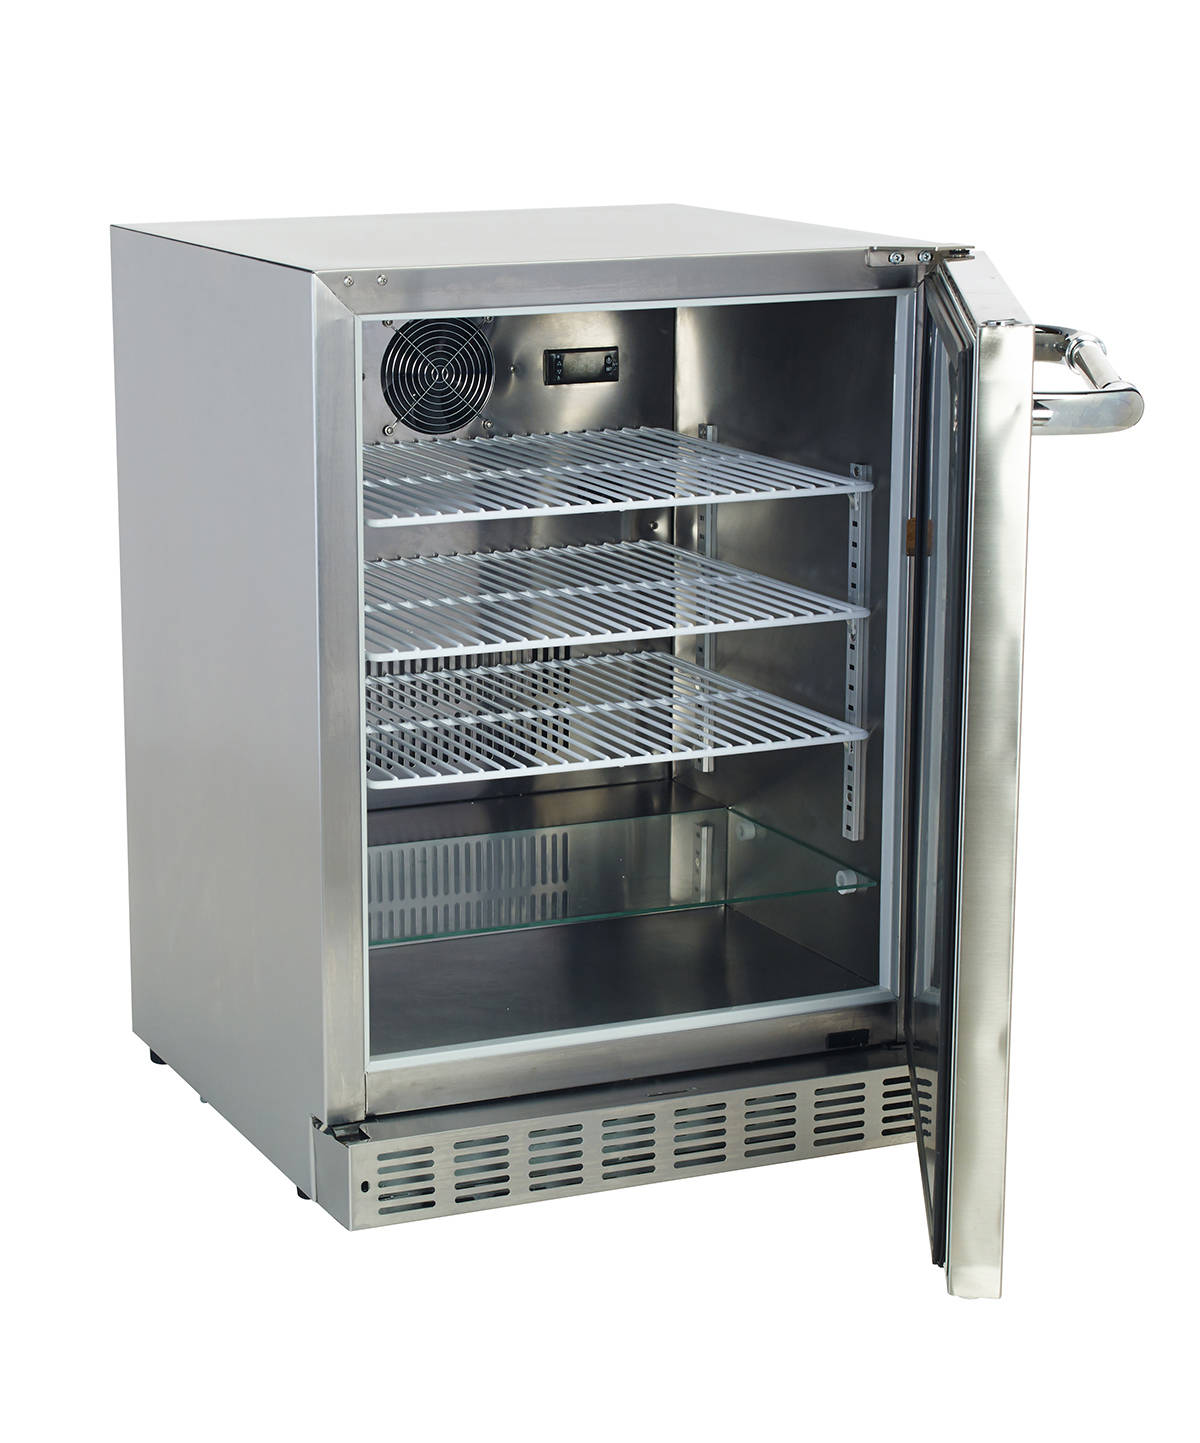 Bull 5 6 cu ft built in freestanding outdoor stainless for Outdoor kitchen refrigerators built in